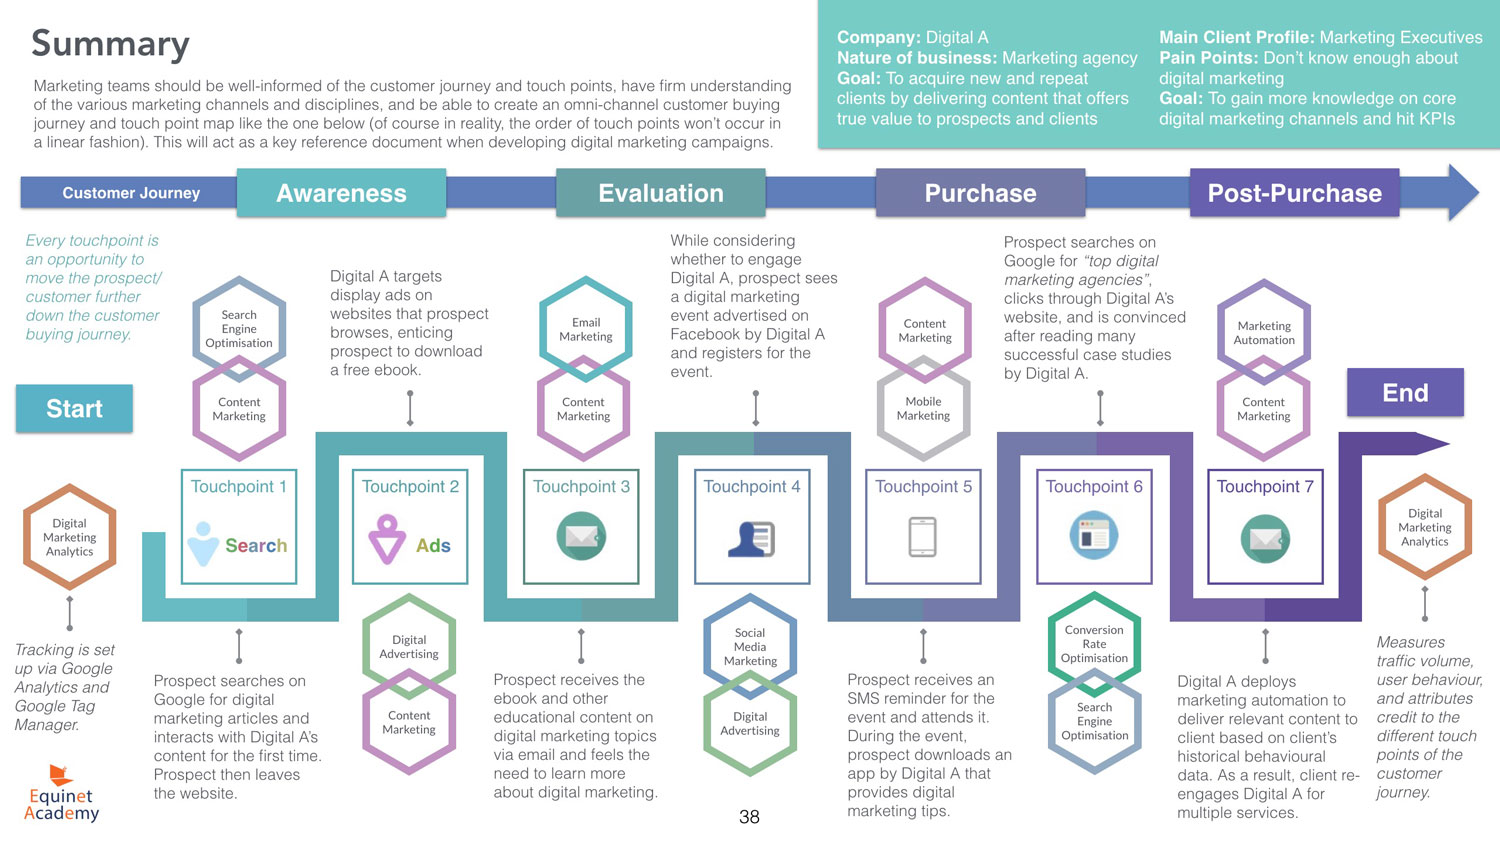 Digital Marketing Customer Journey and Touch Point Map